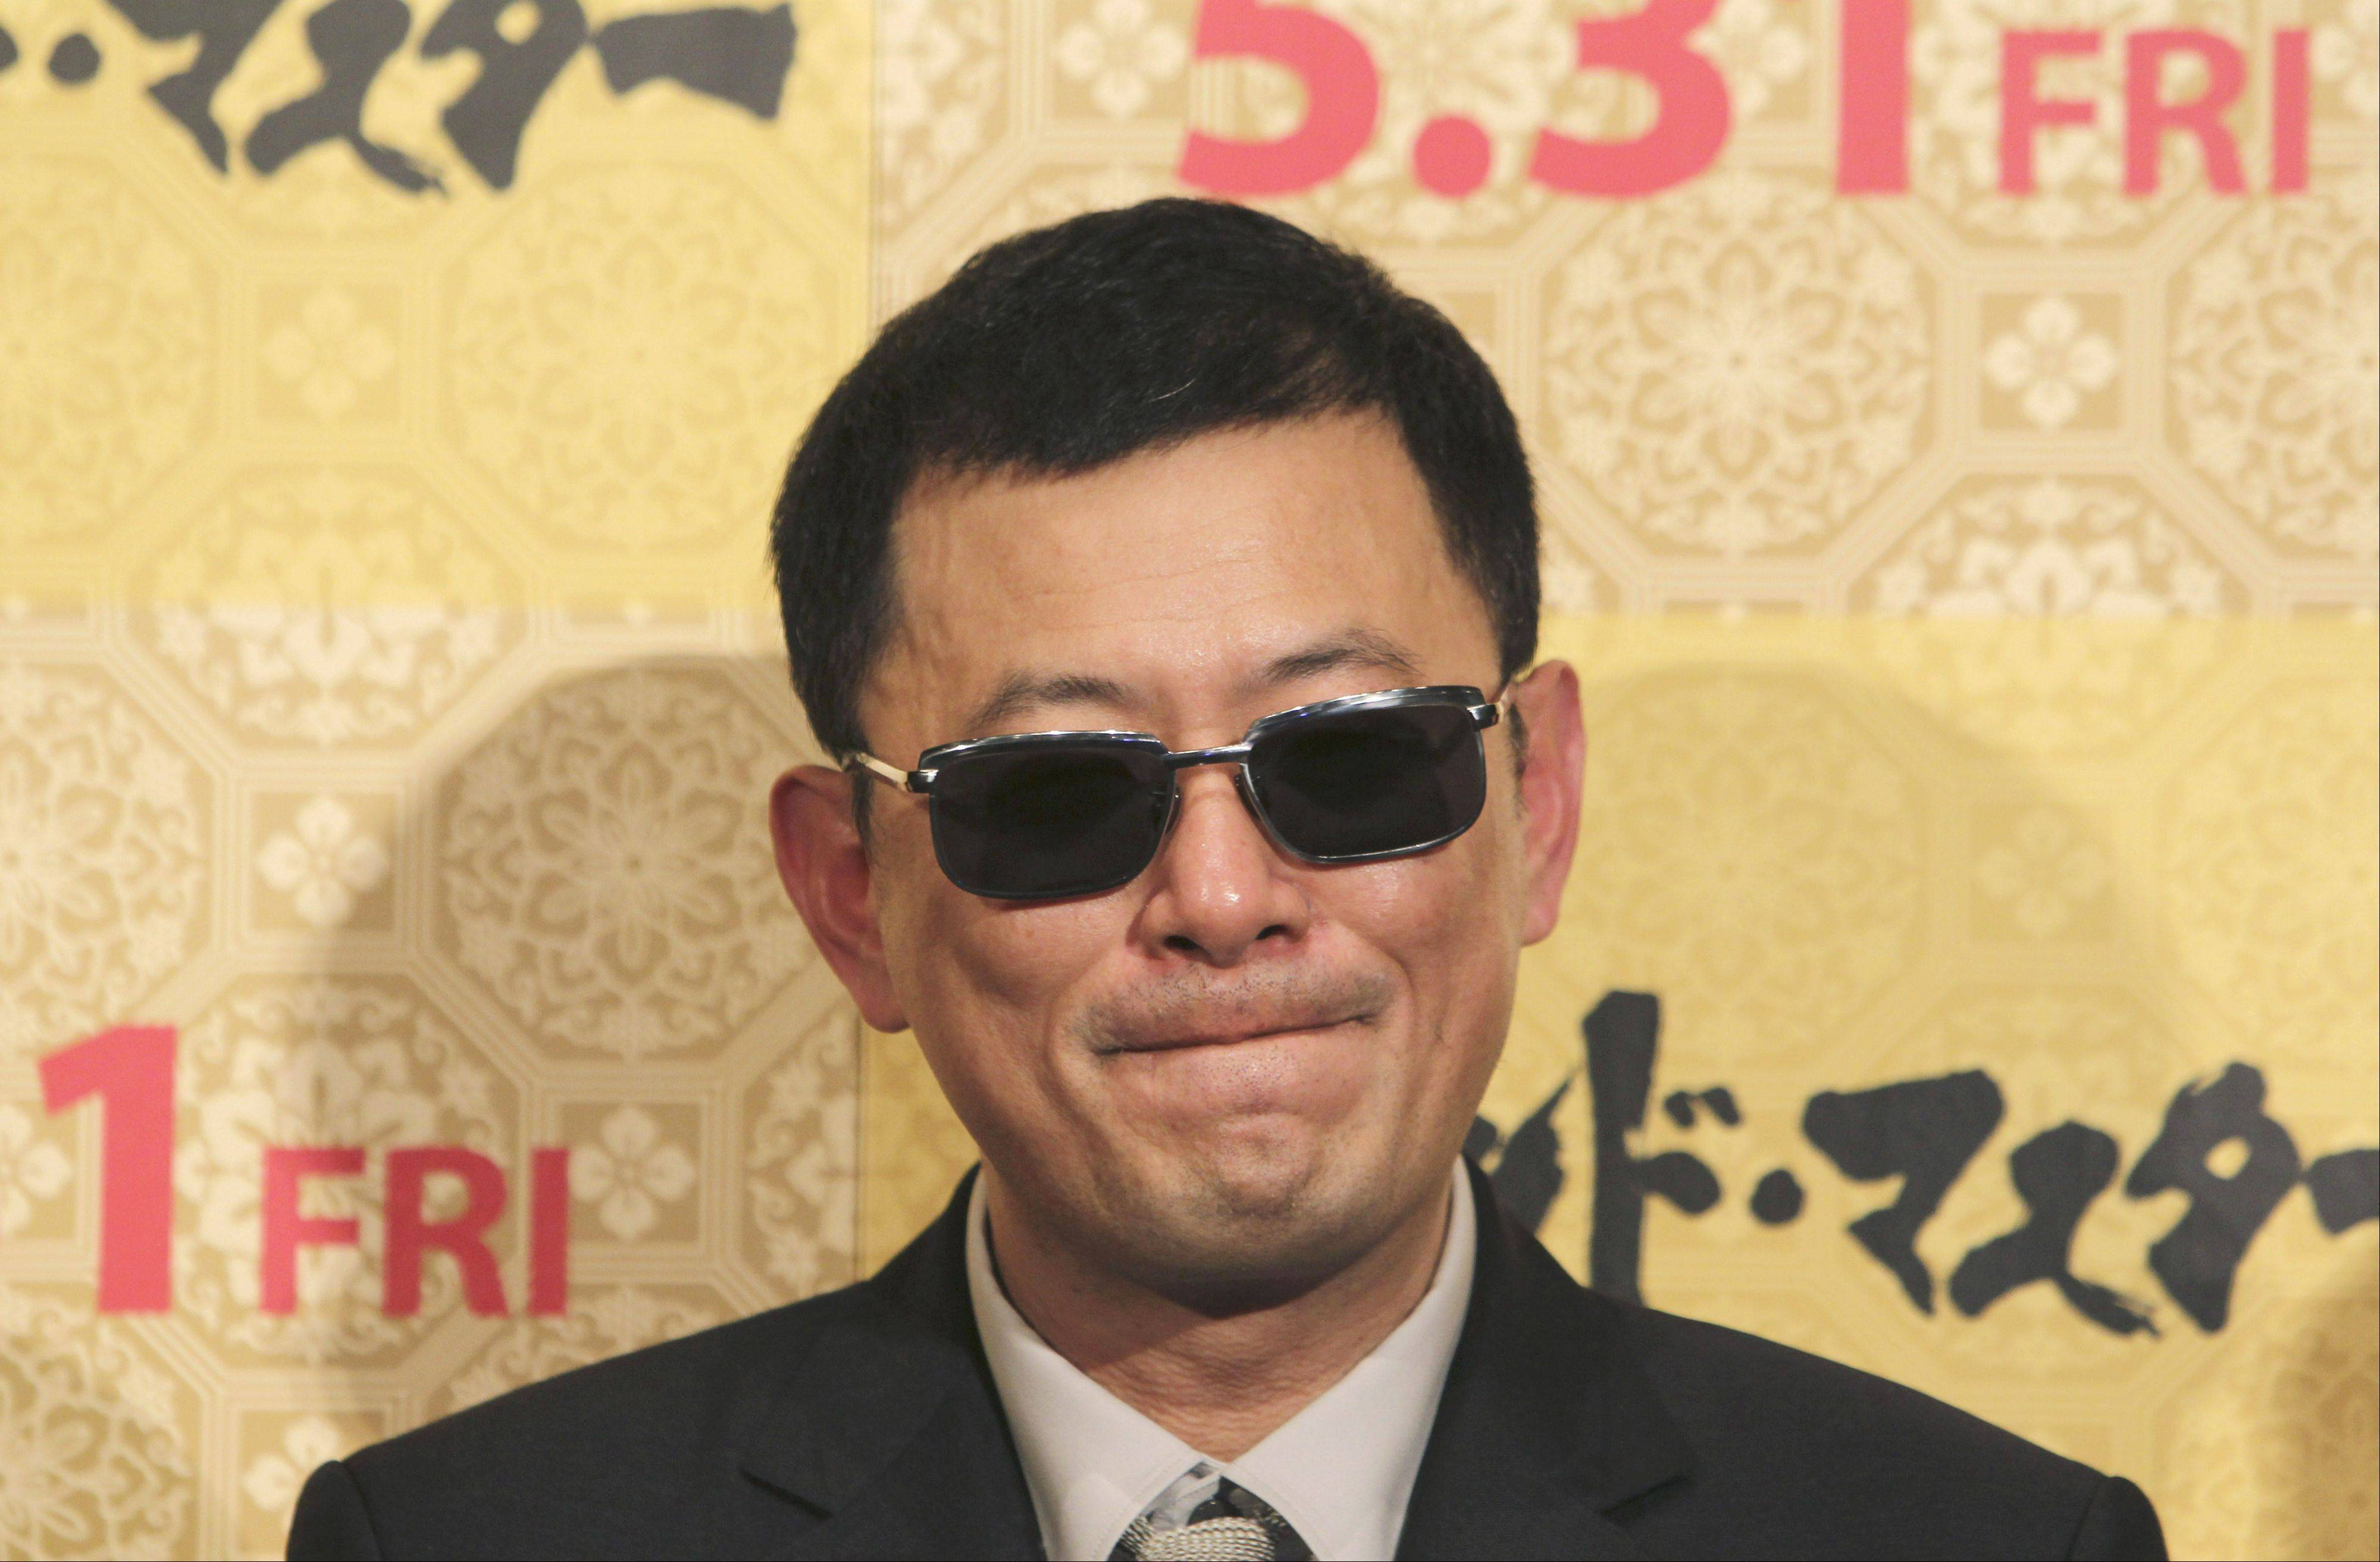 Hong Kong director Wong Kar-wai�s martial-arts epic �The Grandmaster� received a leading 11 nominations for Taiwan�s Golden Horse Awards, including best picture.